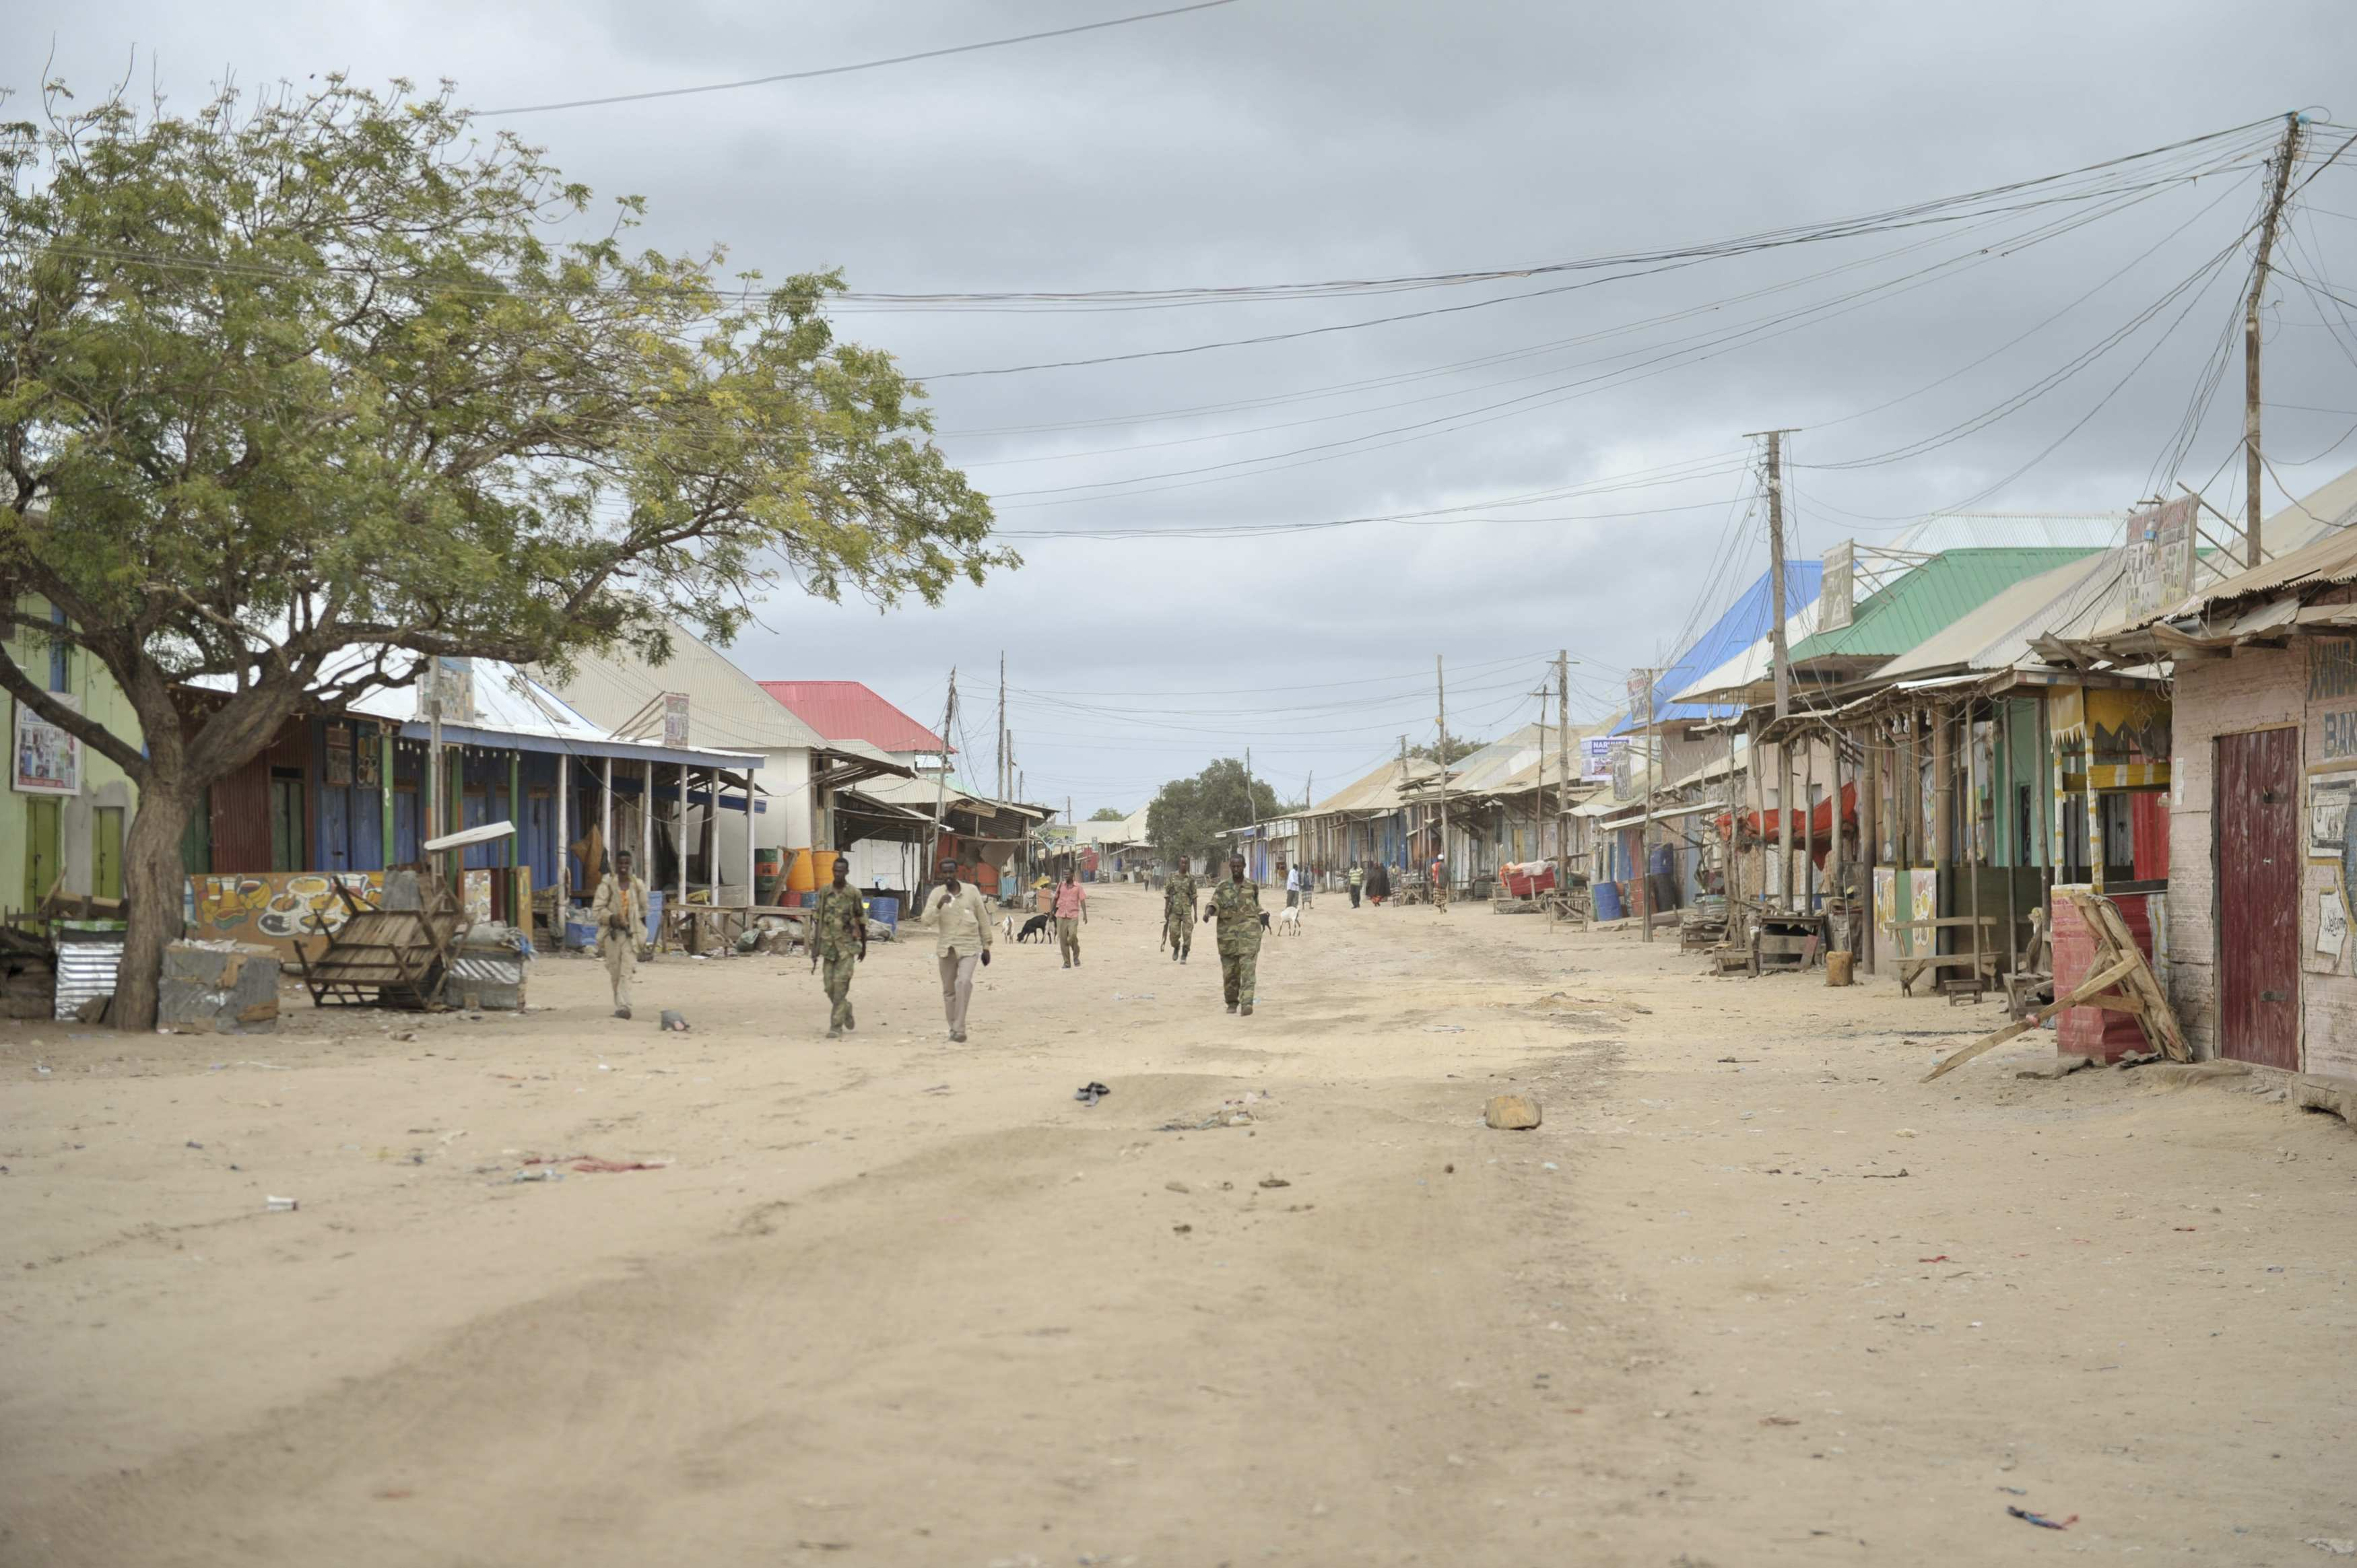 Somali soldiers and civilians walk along a street in Bulamareer, a town in the Lower Shabelle region of Somalia that was recaptured from al-Shabaab rebels.